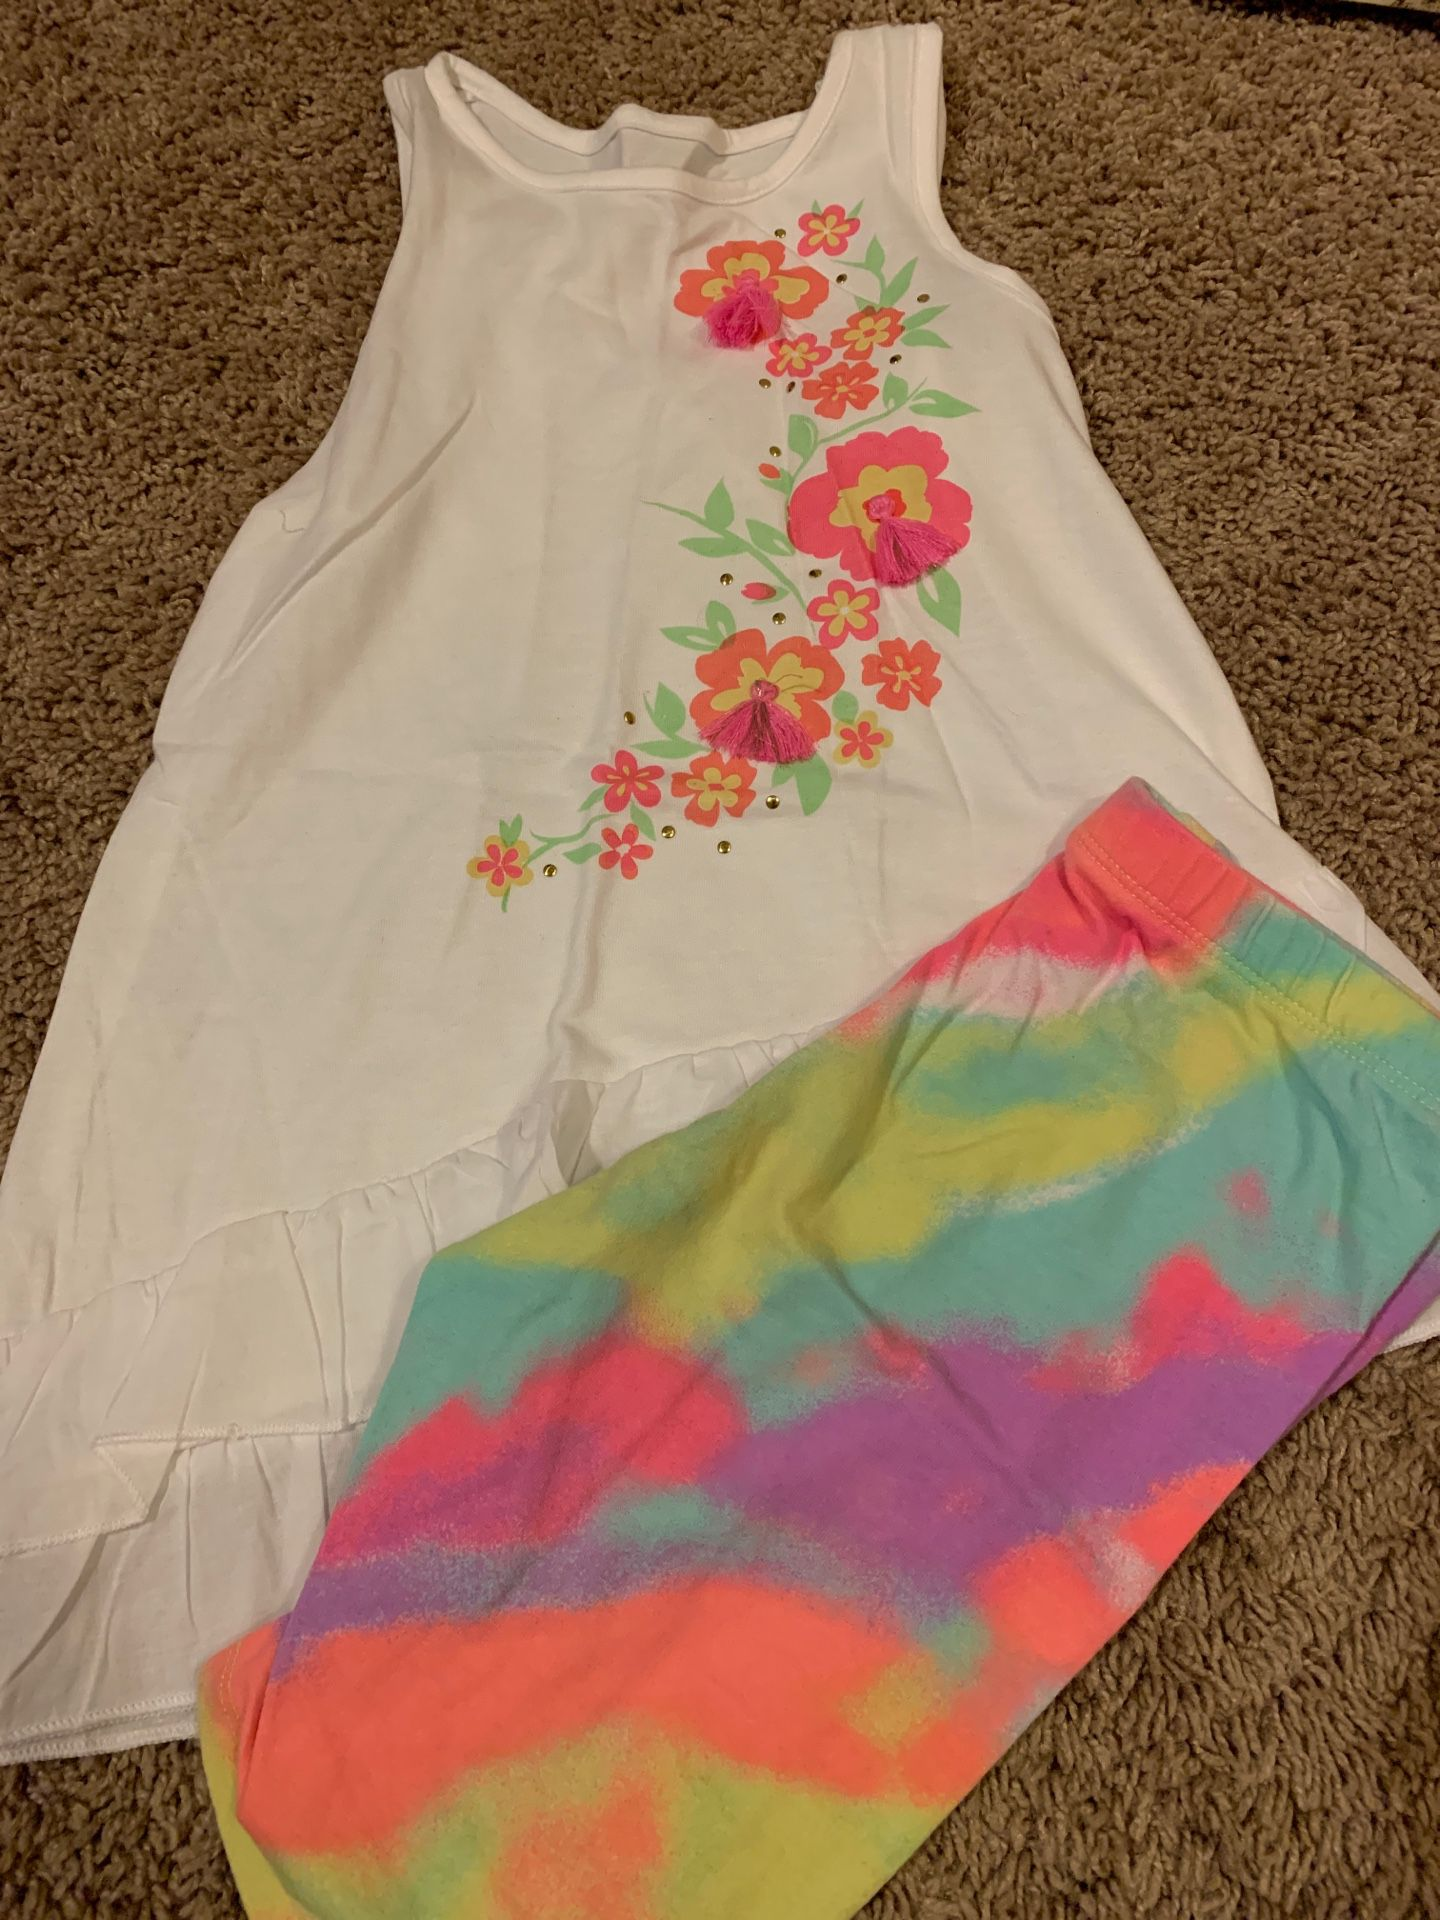 Girls size 6 summer outfit